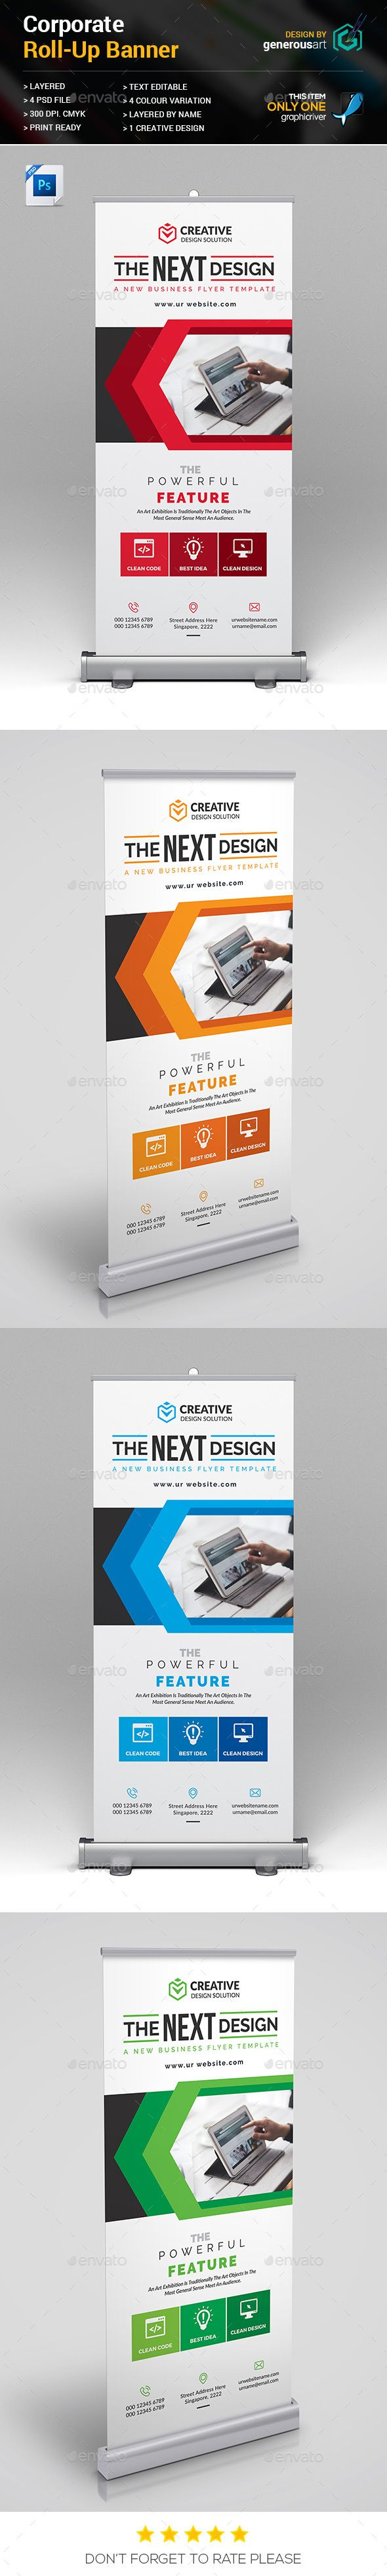 Roll-Up Banner by generousart File Information: Easy Customizable and EditableSi...